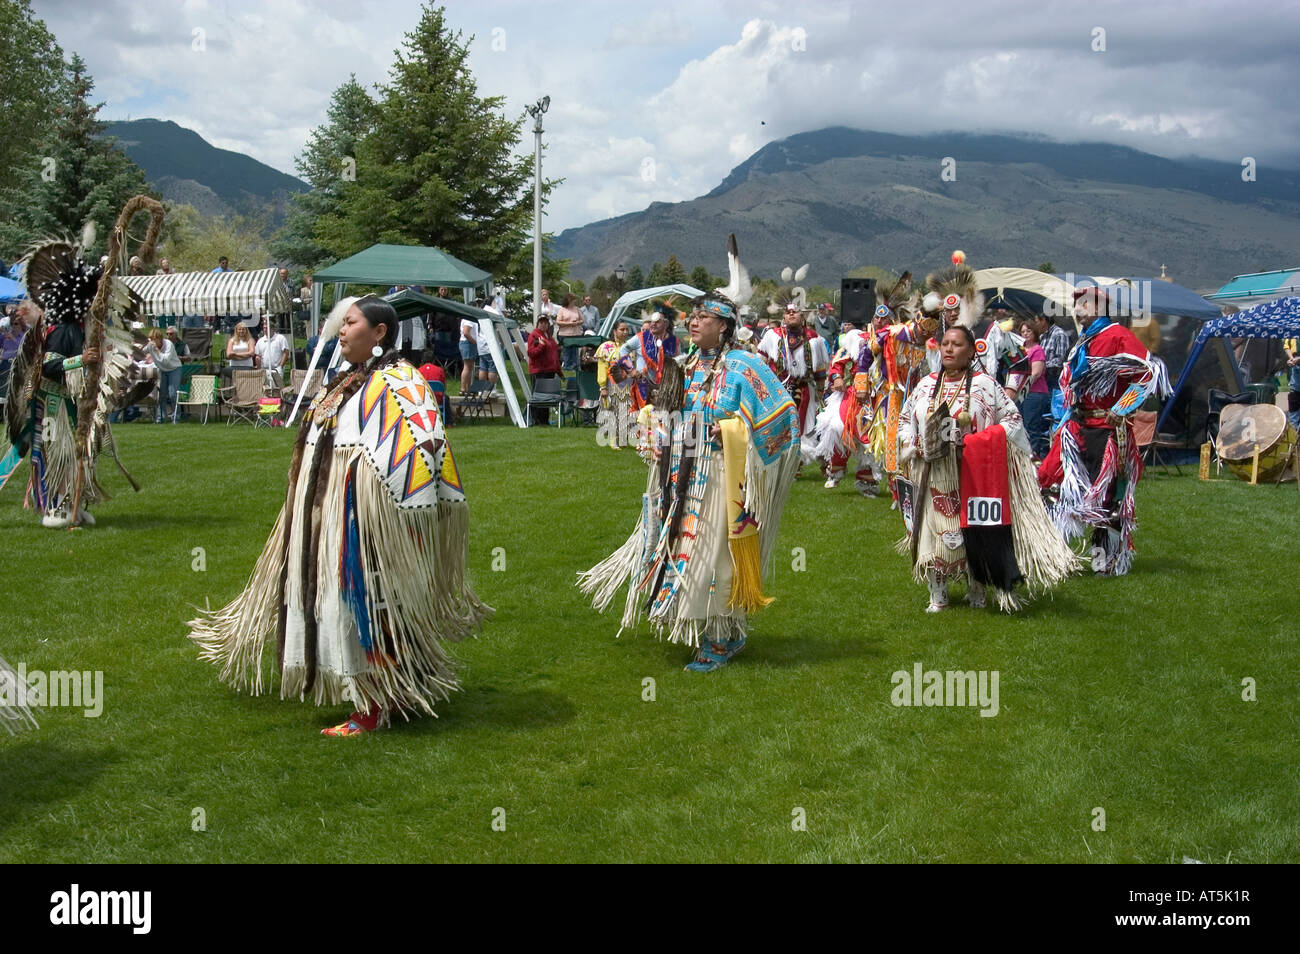 WY Wyoming Cody Dancing at Plains Indian June Powwow Native American Old West western history tribes tribal American - Stock Image